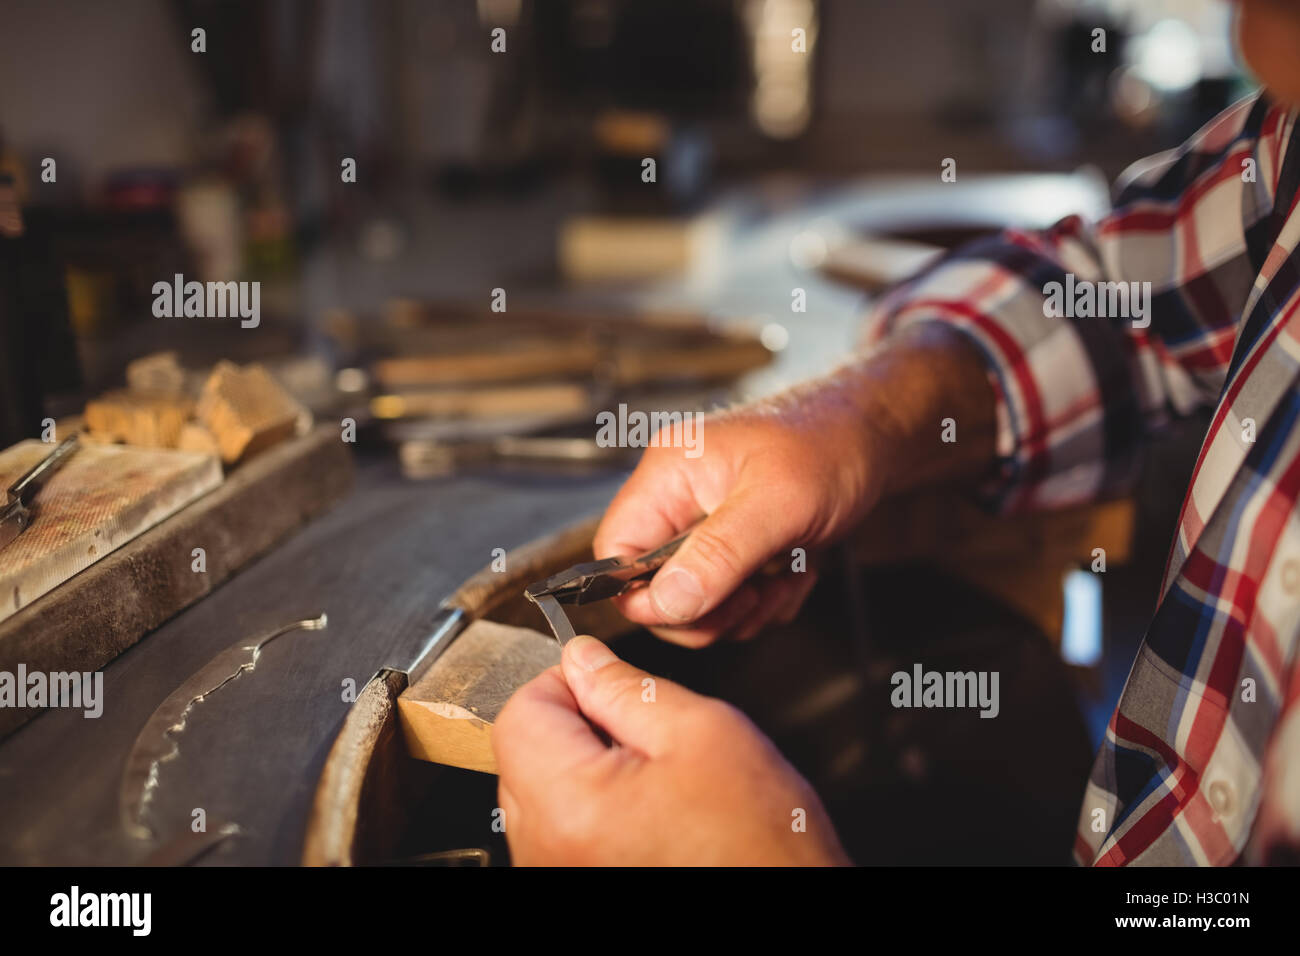 Goldsmith shaping metal with pilers - Stock Image